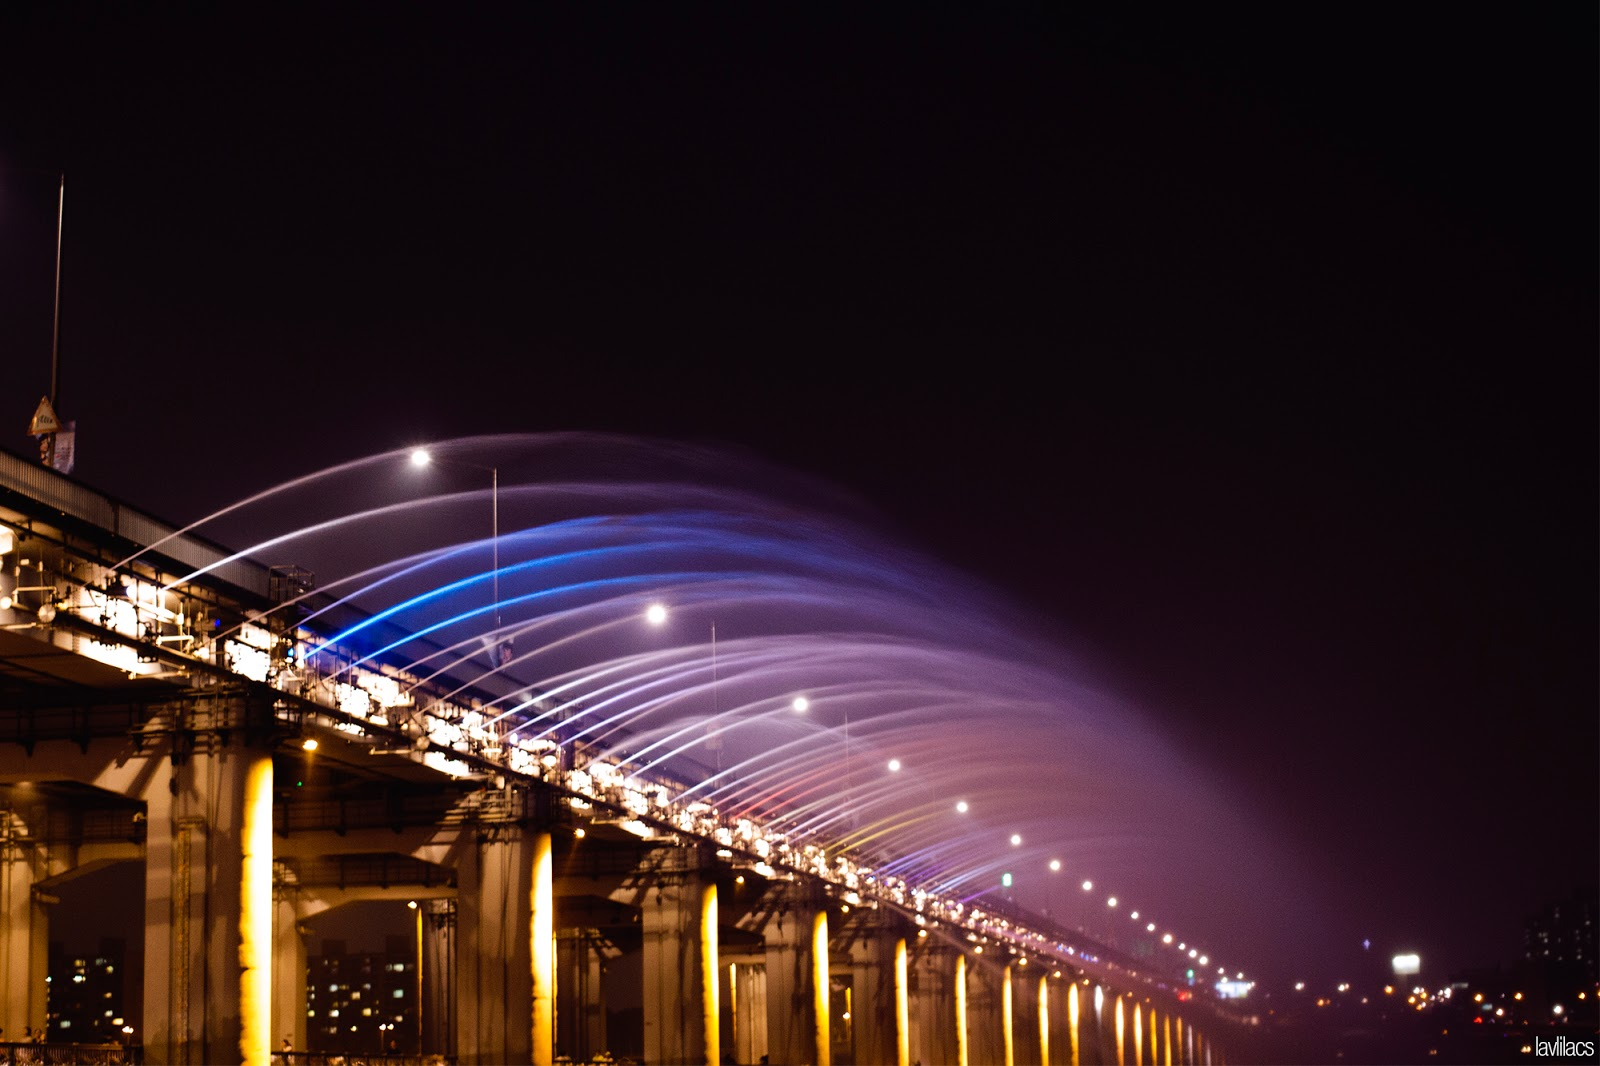 Seoul, Korea - Summer Study Abroad 2014 - Banpo Han River Park 반포 한강공원 - Banpo Bridge Moonlight Rainbow Fountain 반포대교 달빛무지개분수